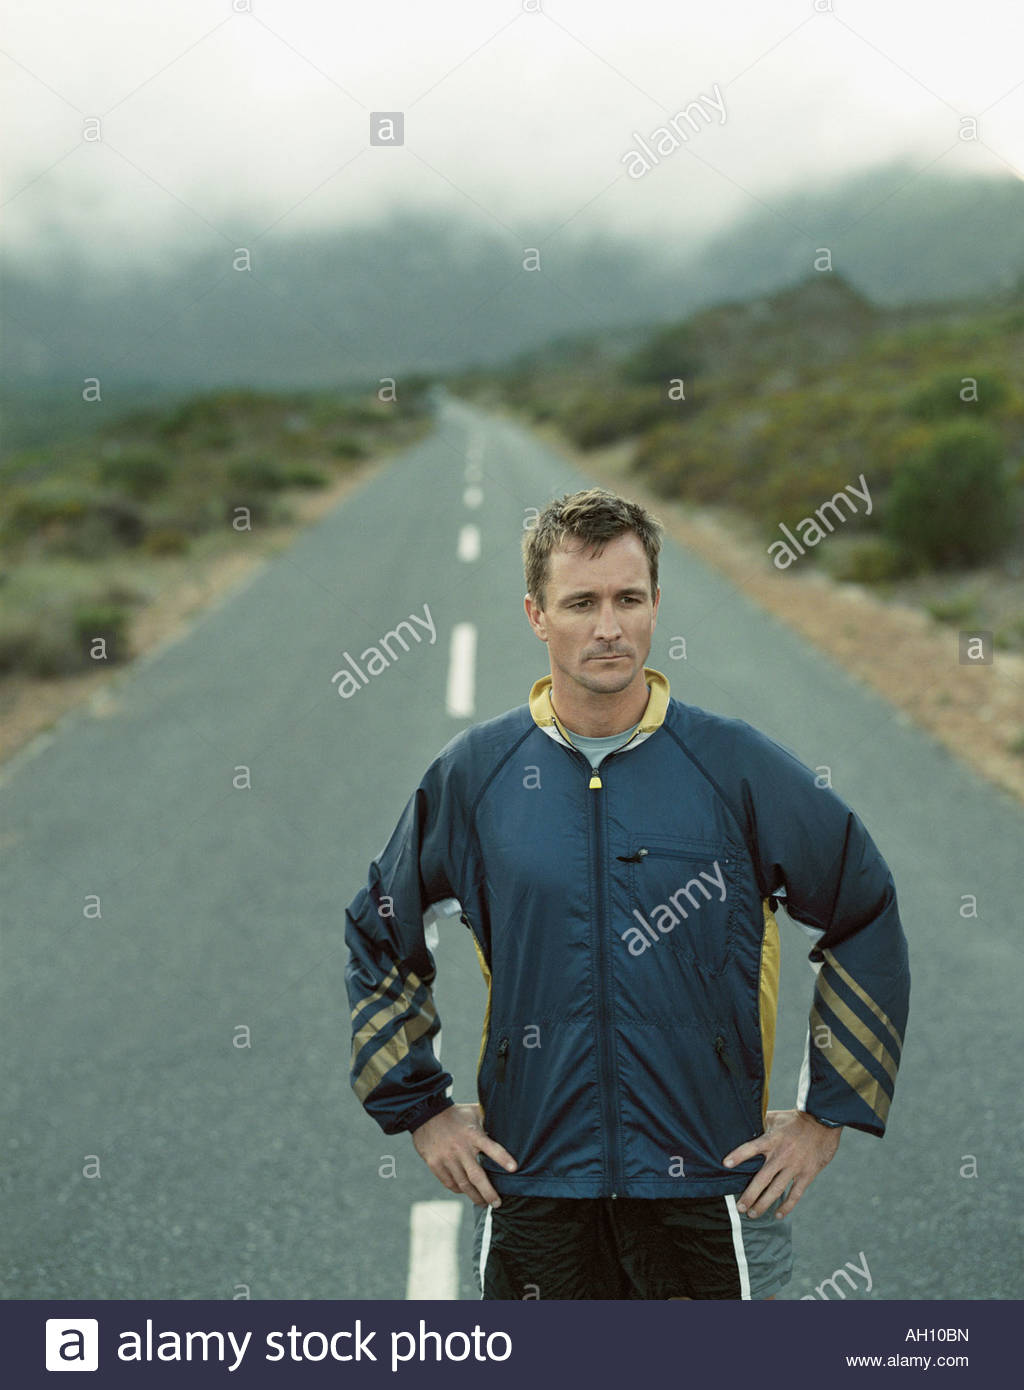 A stoic man standing on a desolate road - Stock Image